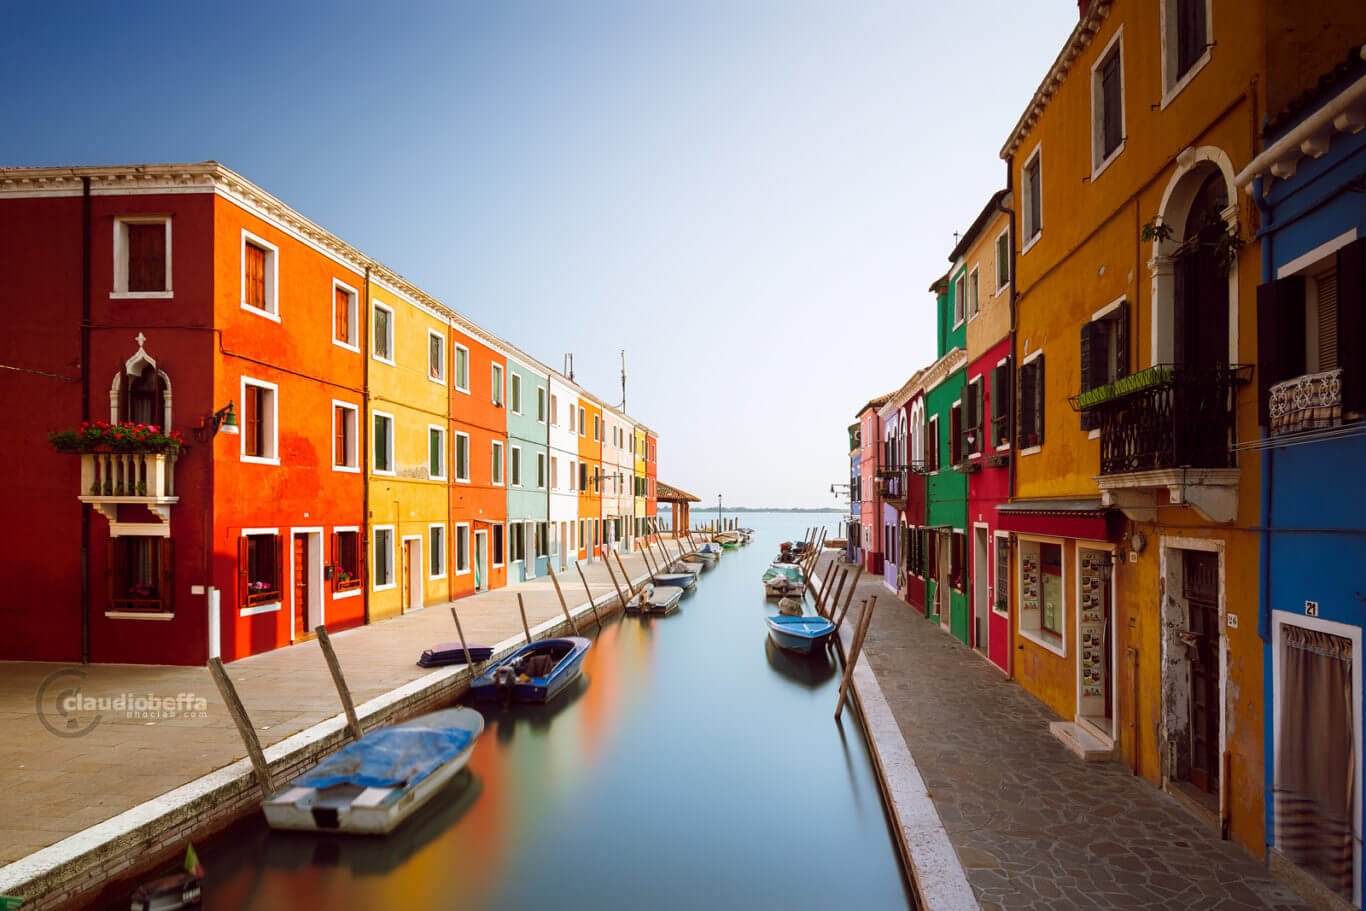 Burano, Iconic Burano, Venice, Venezia, Italy, Colors, Houses, Canal, Boats, Sunny, Noone, Long exposure